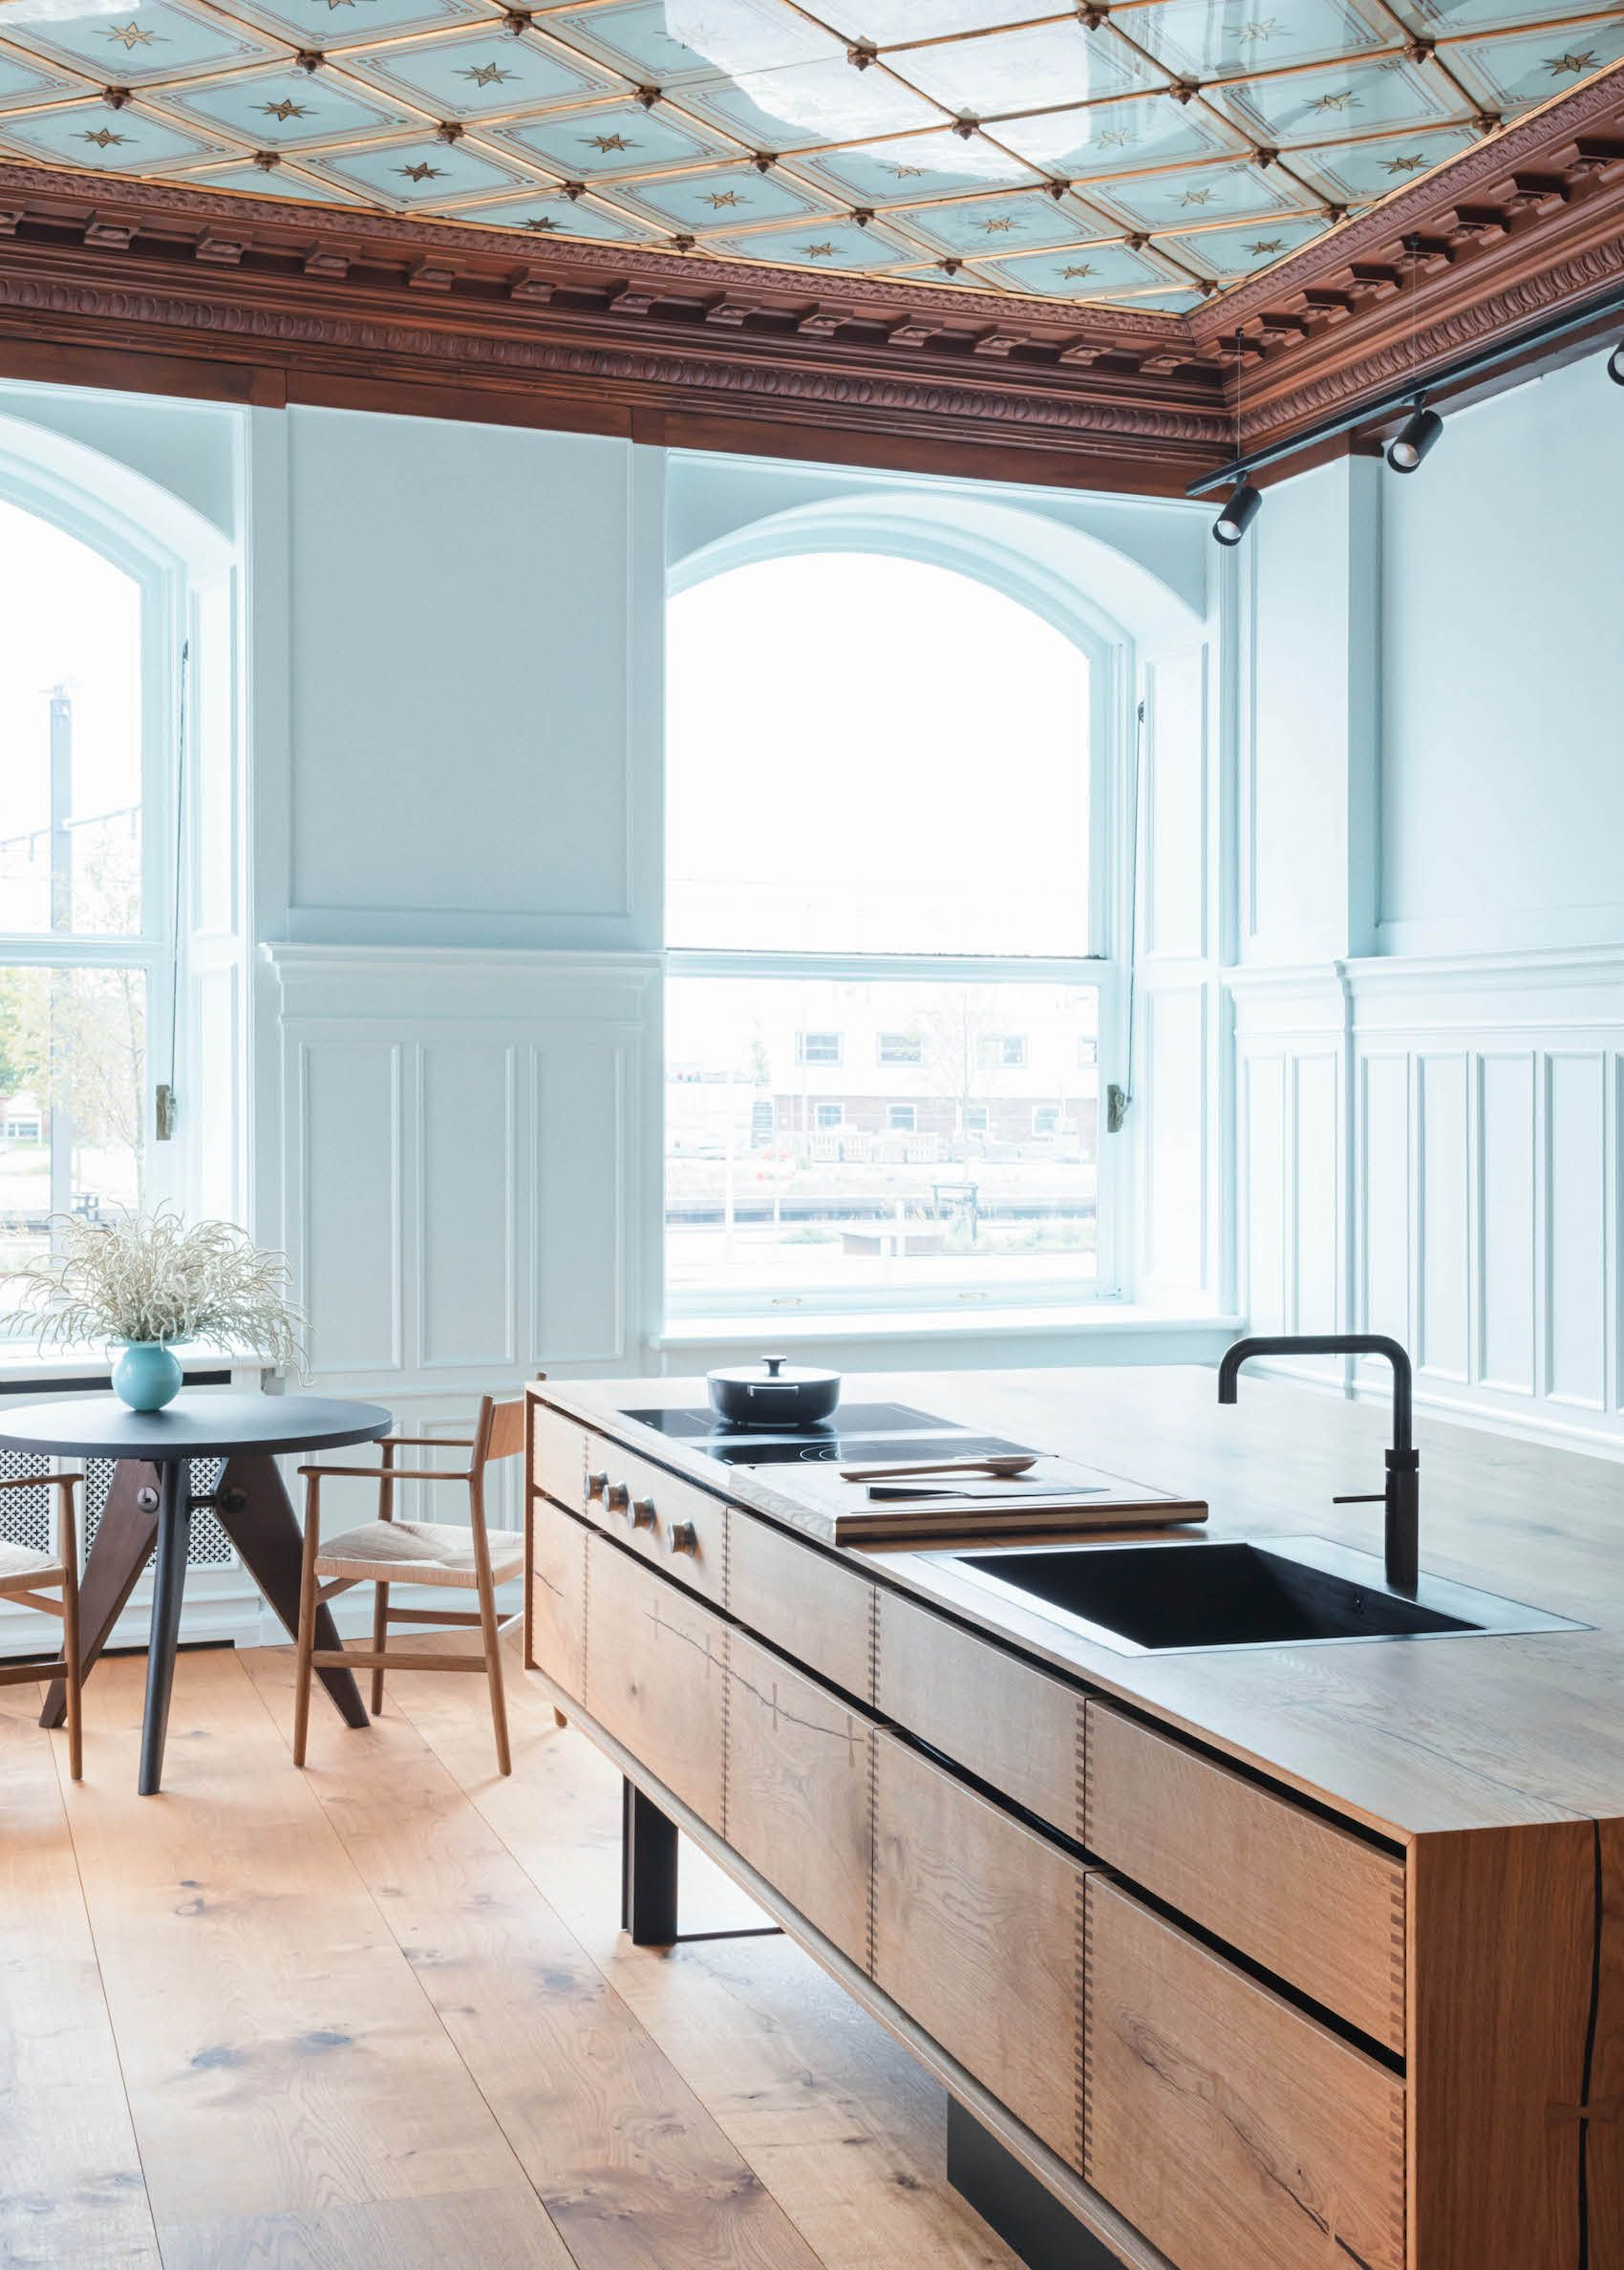 kitchen, wooden floor, white wainscoting wall, wooden cabinet, round table, wooden chairs,